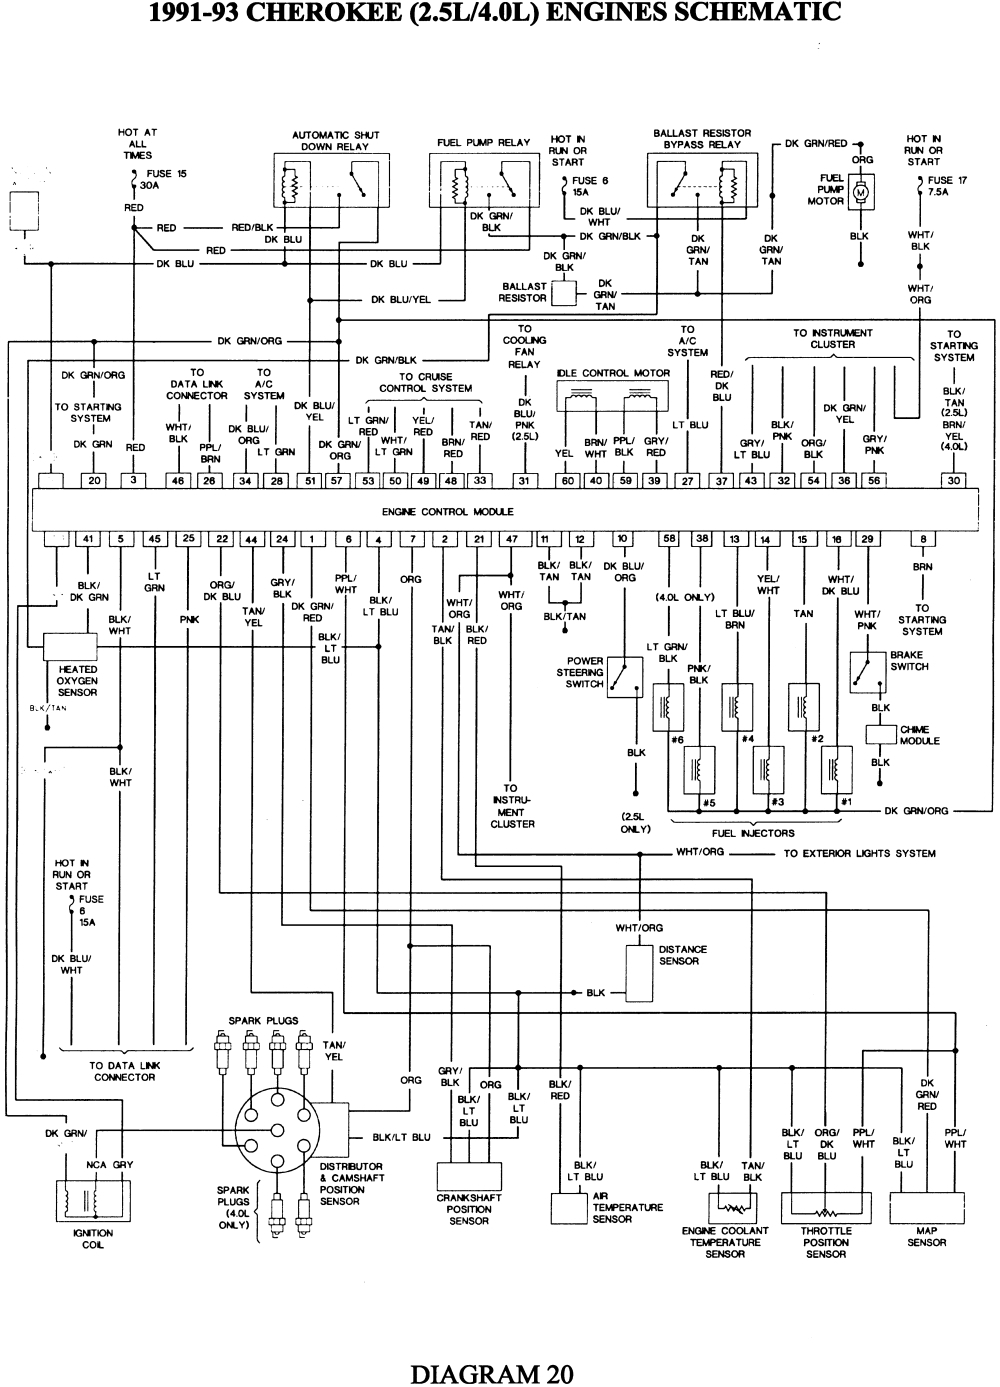 1997 jeep grand cherokee wiring diagram Download-2000 Jeep Grand Cherokee Starter Repair Guides Wiring Diagrams 11-m